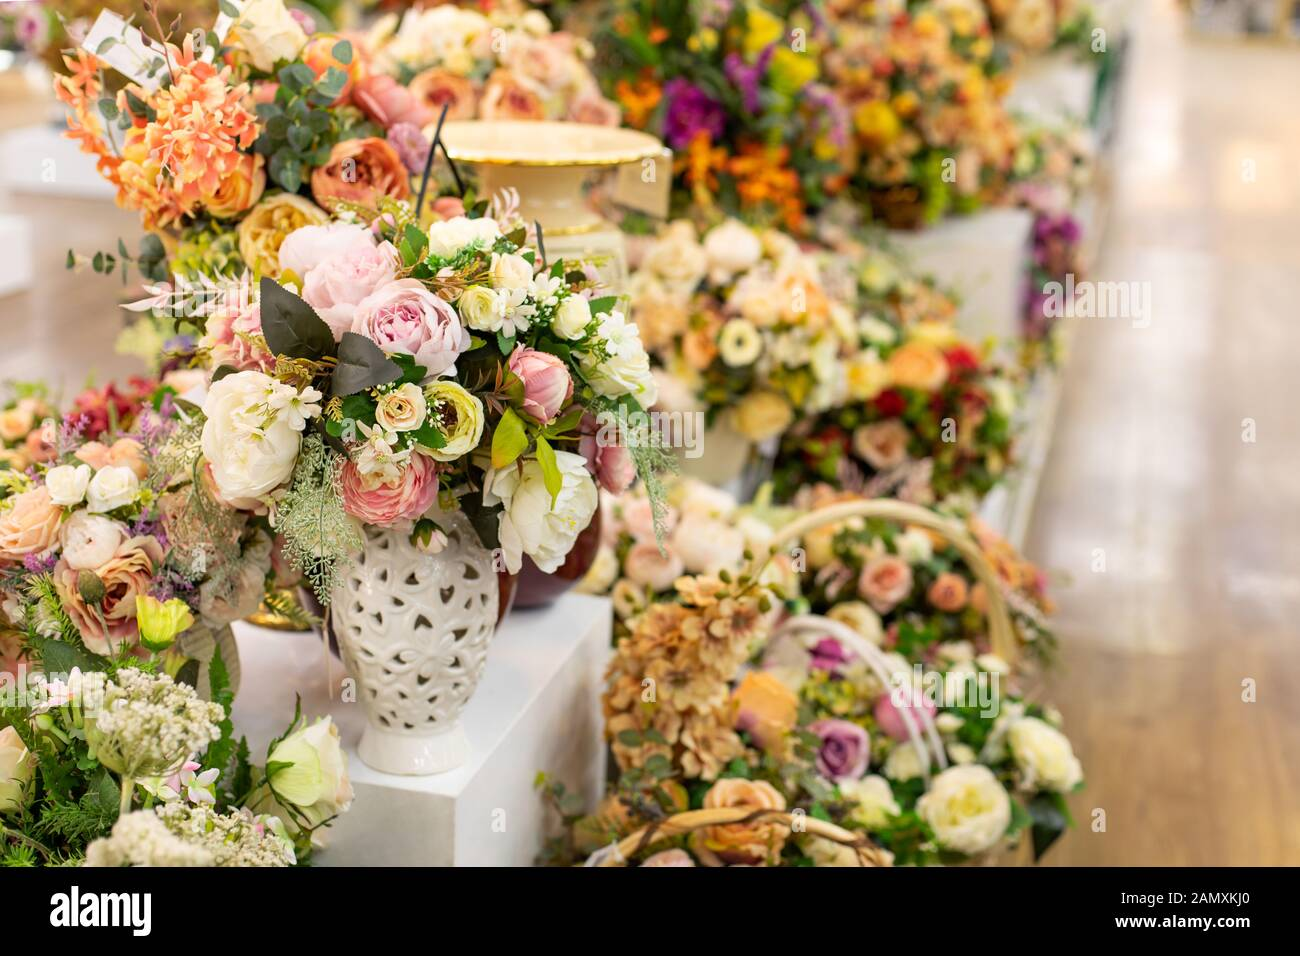 Interior Decor Artificial Rose Flowers A Large Bouquet Of Pink White Fake Rose Flower Shop A Beautiful Bouquet Of Flowers With Leaves Backdrop Stock Photo Alamy